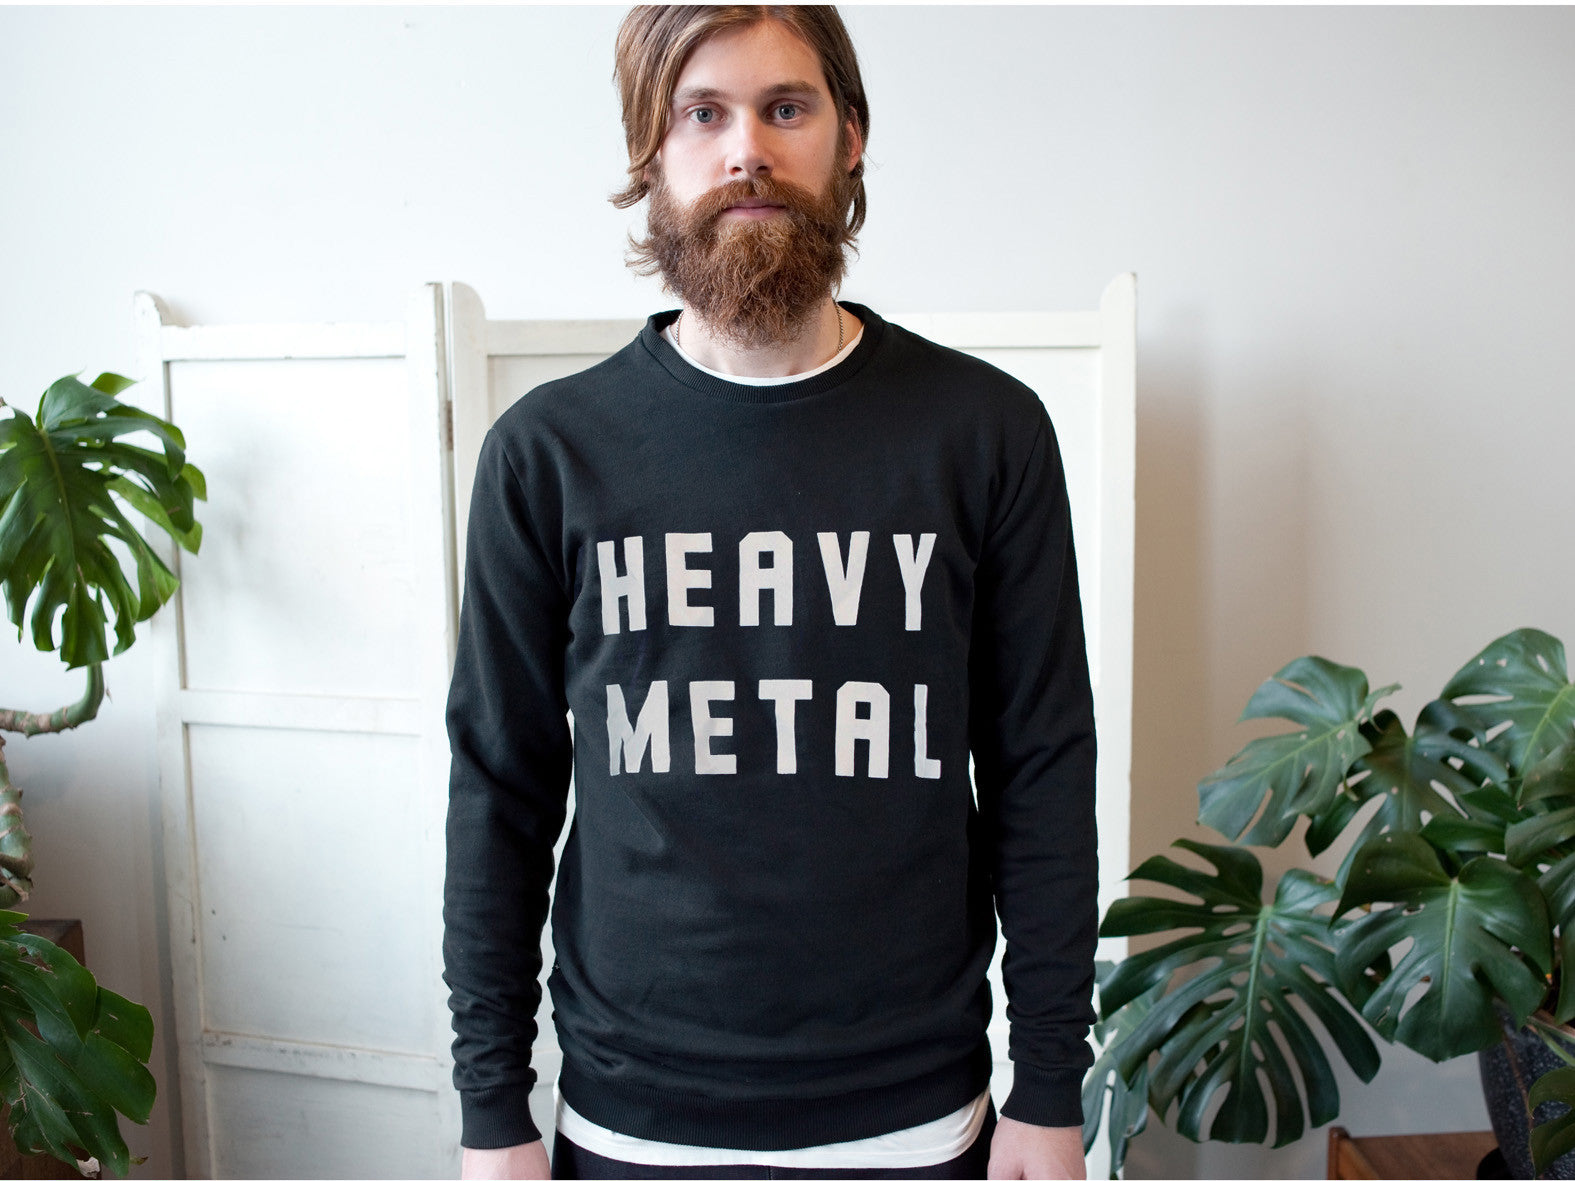 'EAVY METAL. SWEATER.